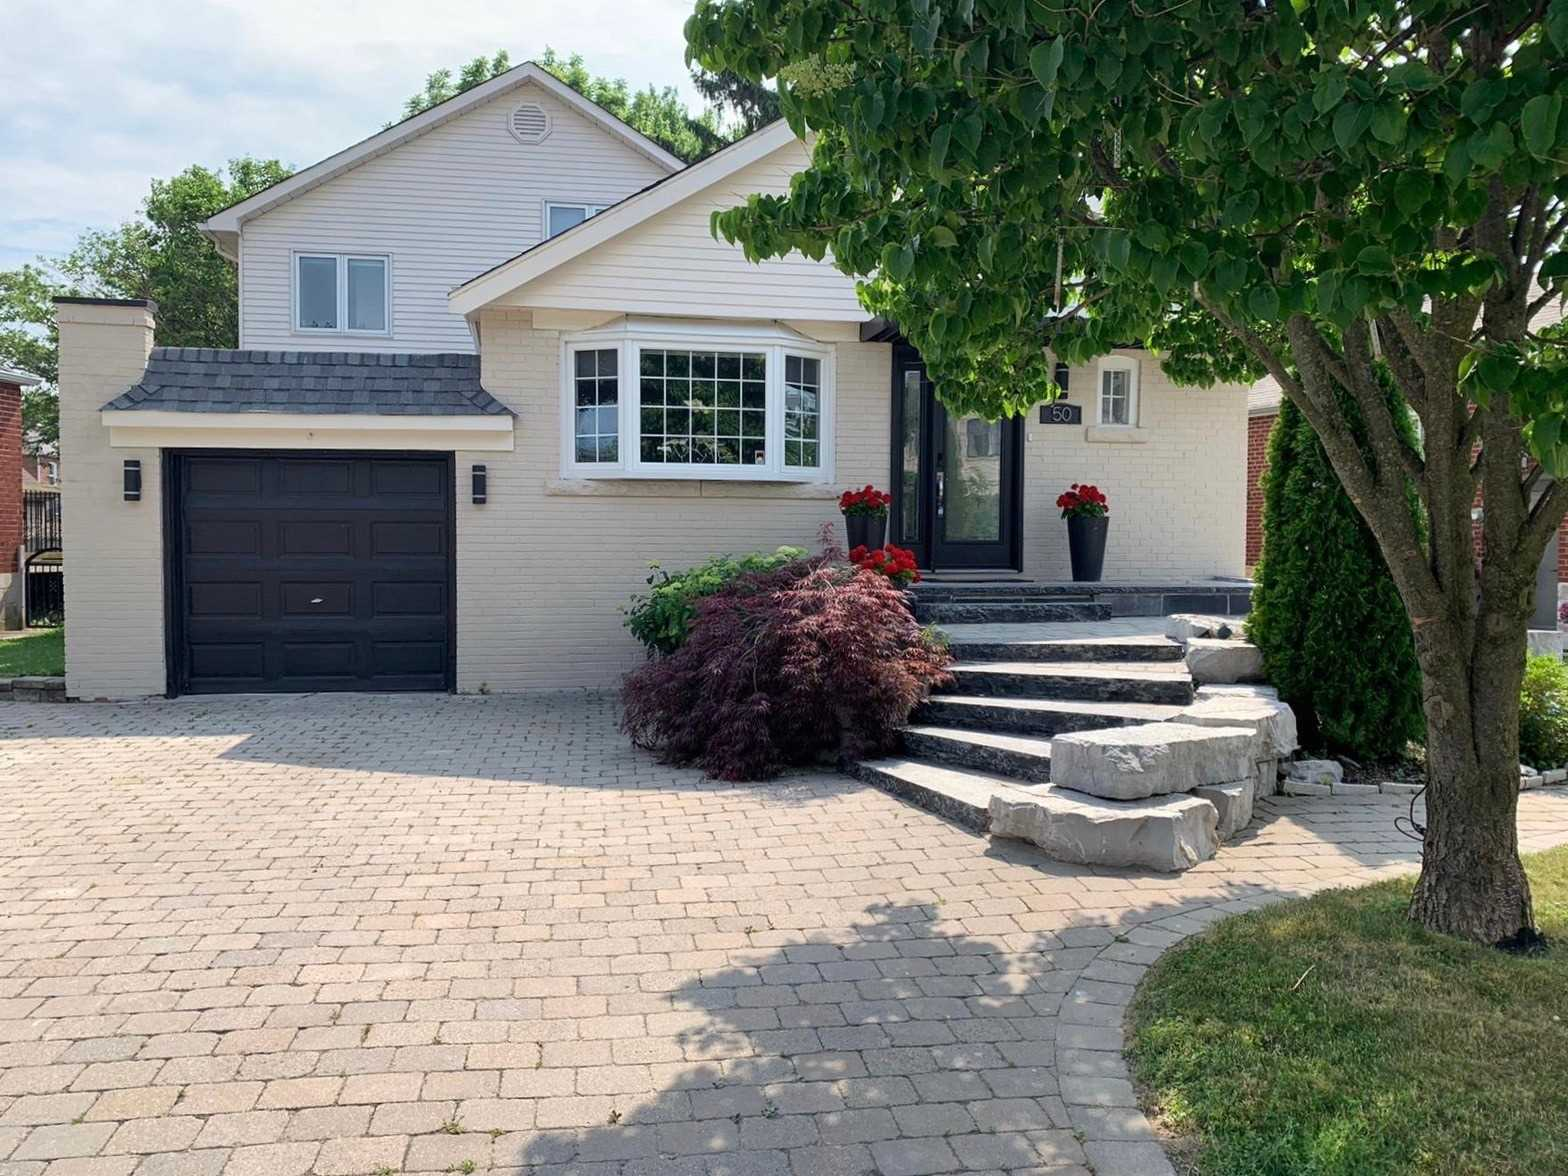 A Truly Spectacular Rare 58X163Ft Property Nested In The Prestigious Parkview Hills Neighbourhood! Newly Renovated Home Top To Bottom 3+1 Large Bdrm, 3Wshrm Home W/2 Outdoor Decks, Brand New Roof+Hvac,Stunning Kitchen With Skylight,New Engineered Hdw Flooring, & Plenty More Impressive Features! W/O Finished Separate Basement (Great For Rental Income). Perfect House For Entertaining W/Parking For Five Cars. Move In Ready Or Plan Your Build In The Features